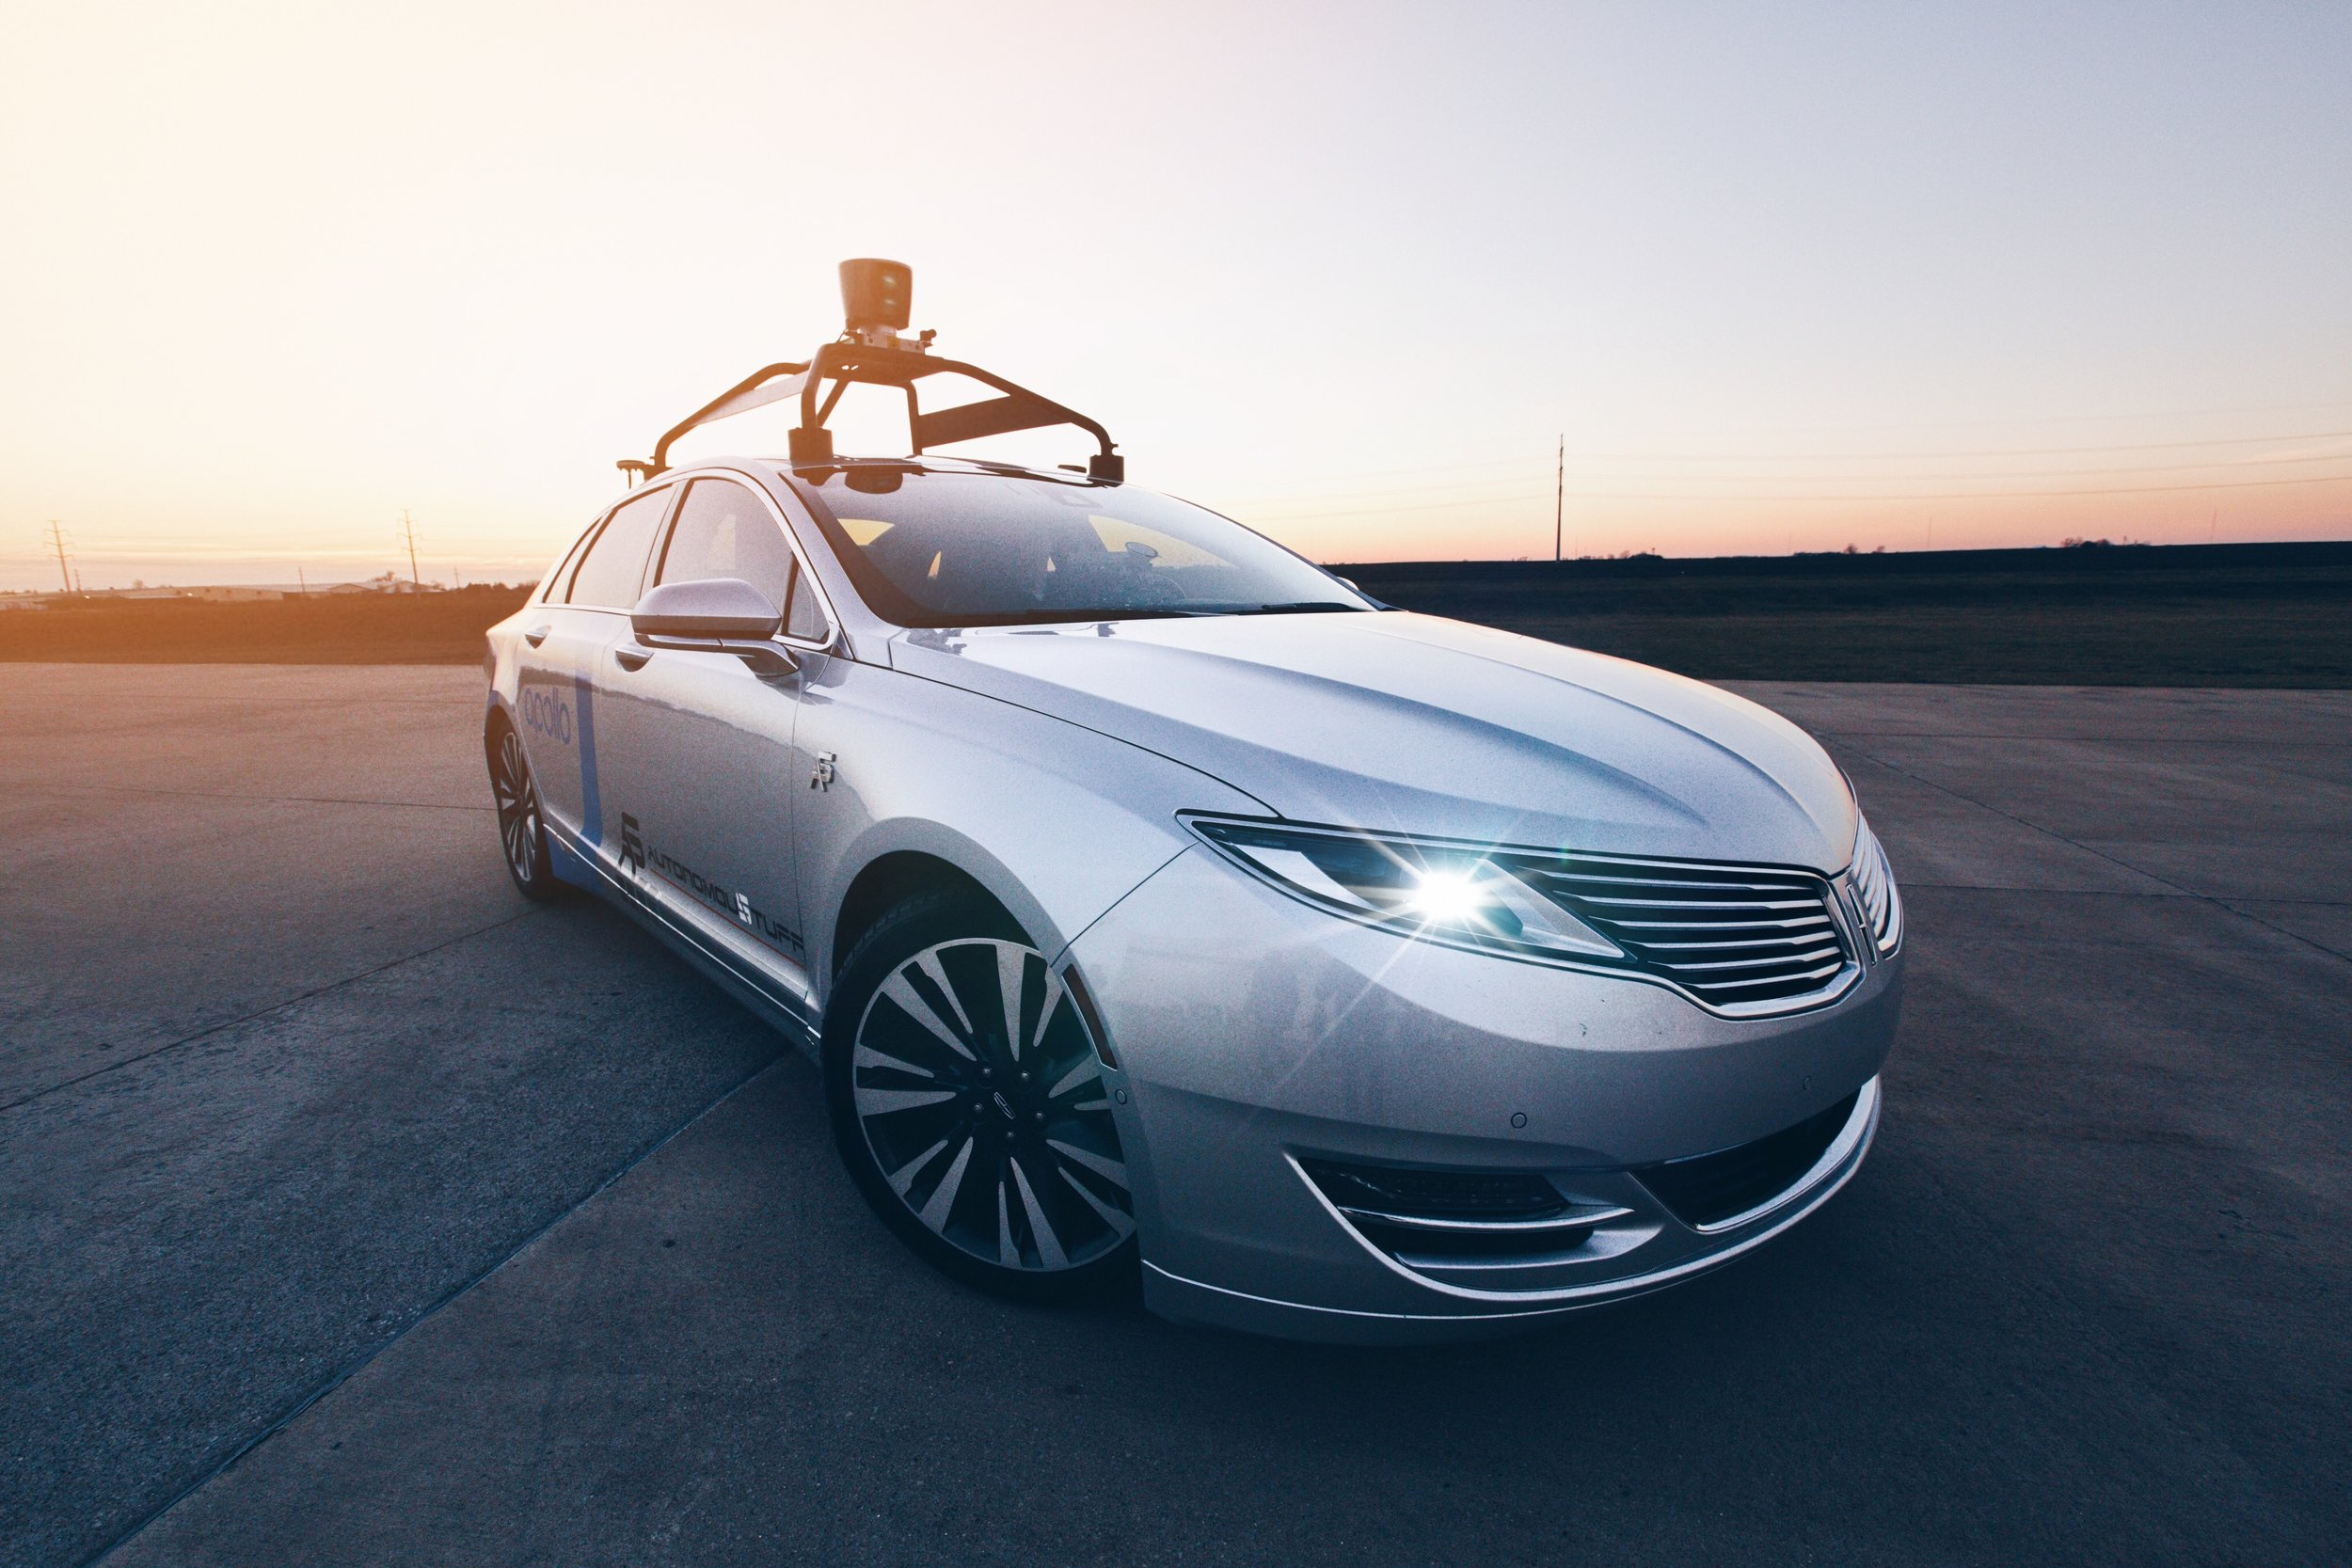 AutonomouStuff's Baidu Apollo Test Vehicle